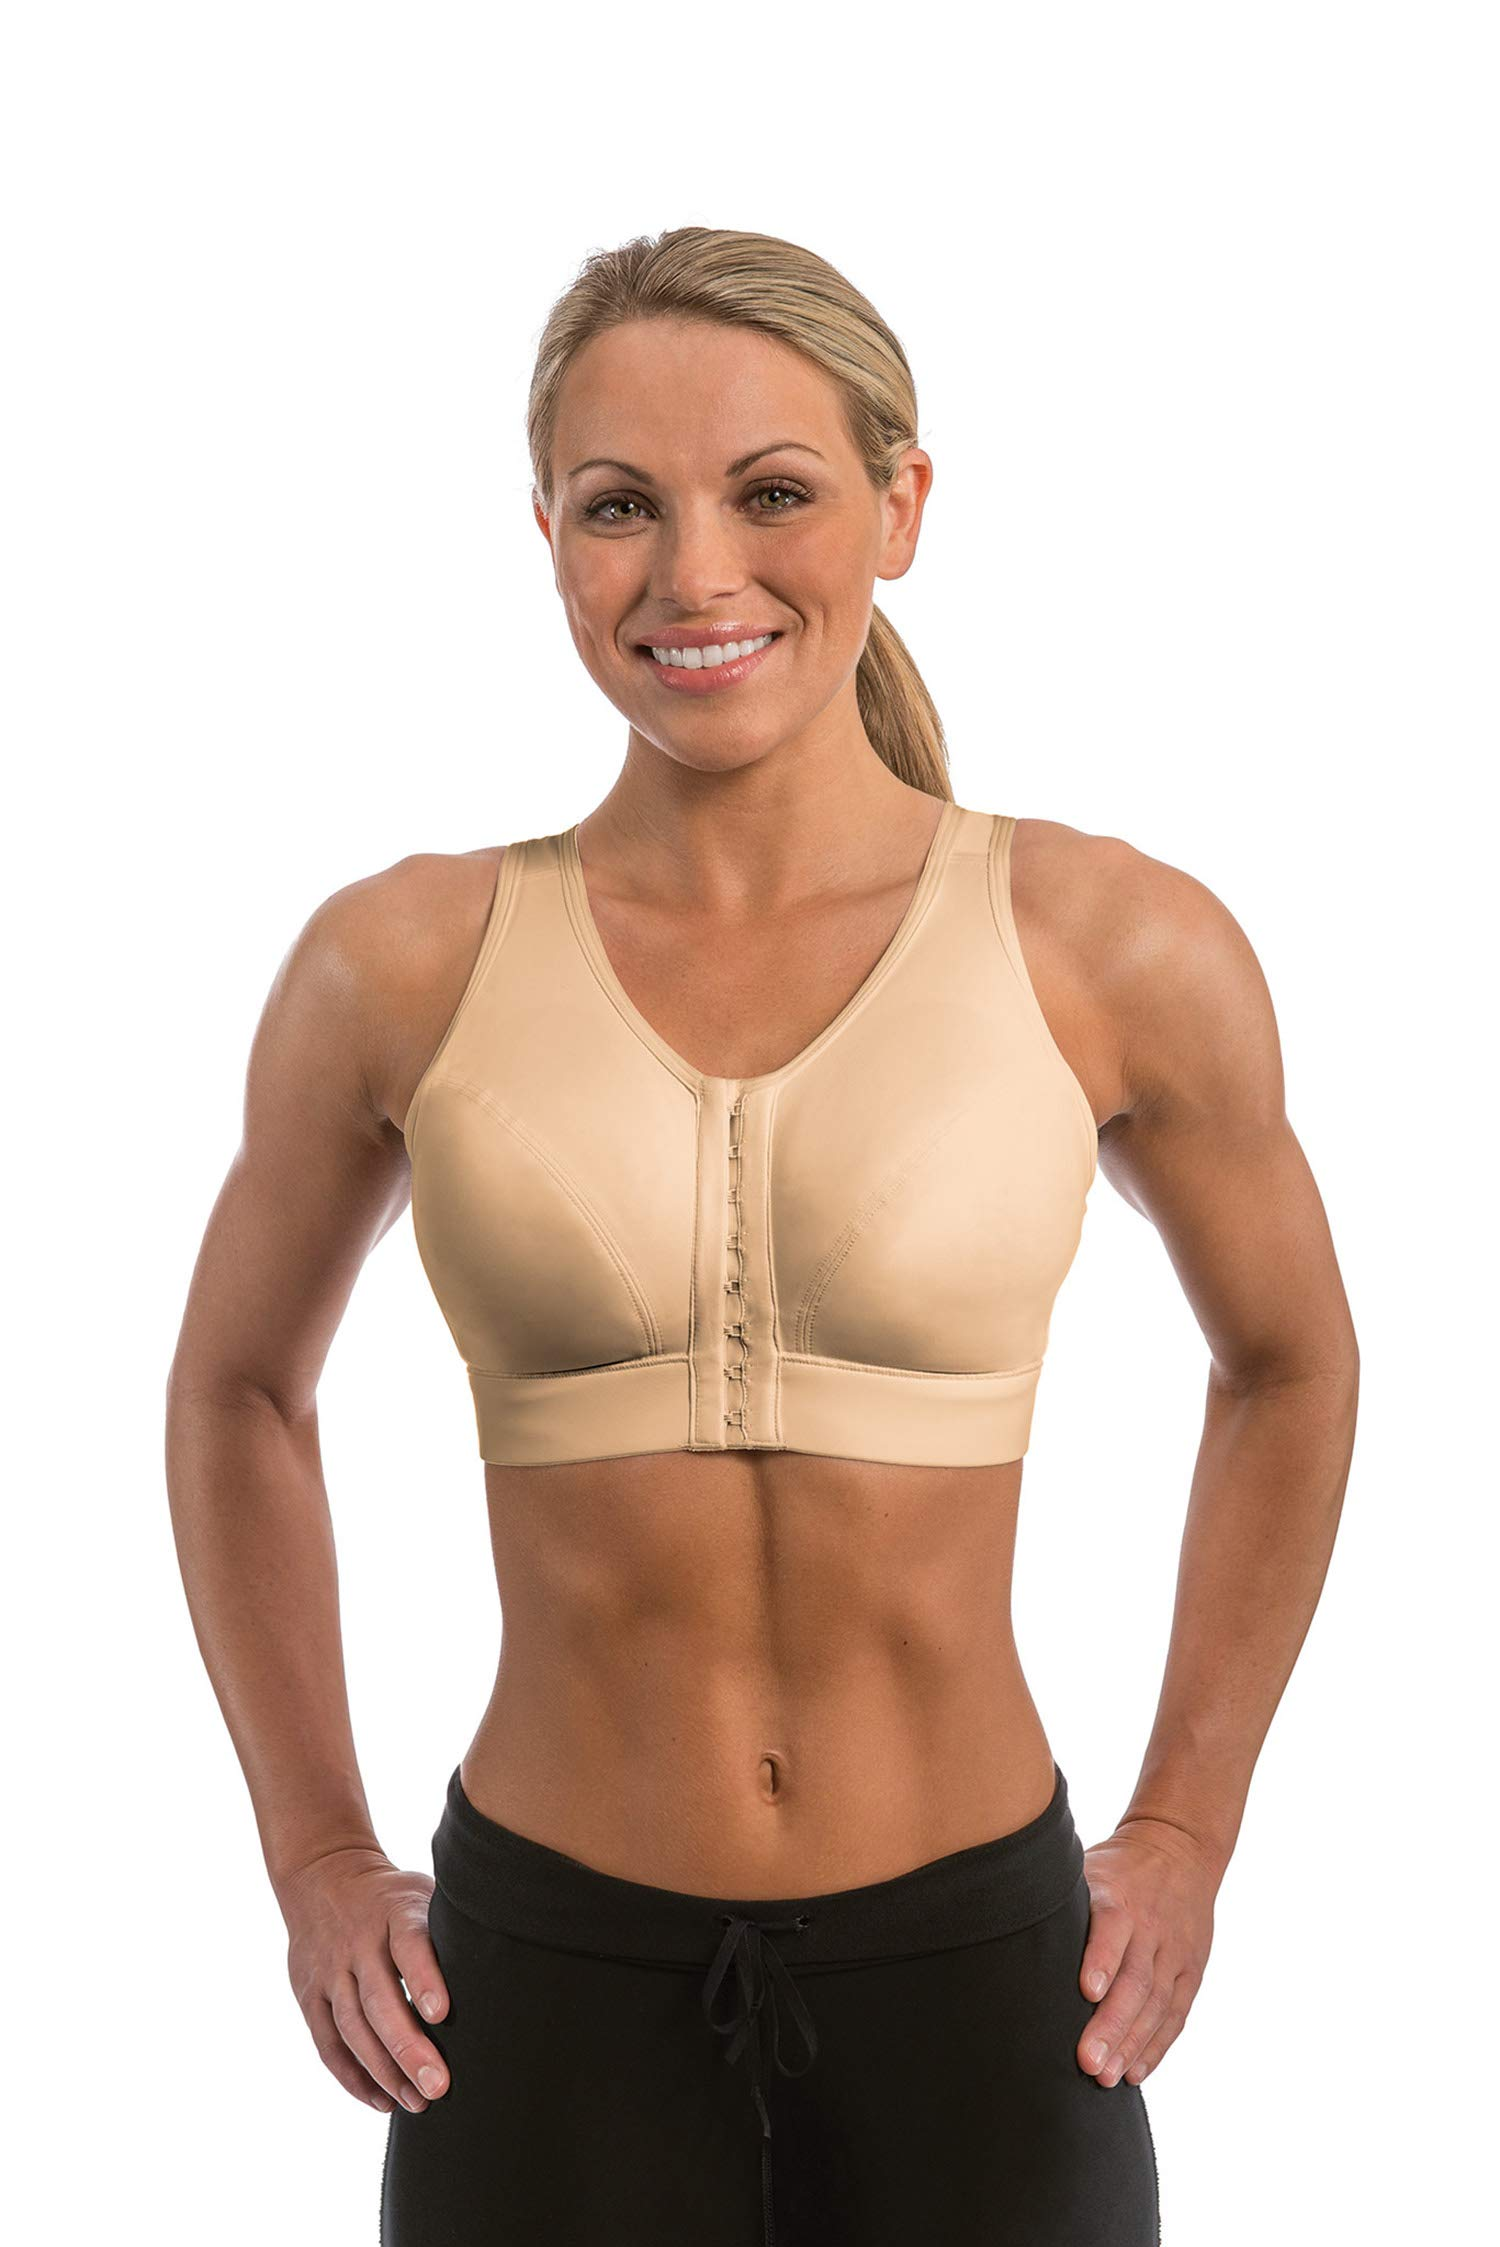 Enell, Lite, Women's Full Coverage Sports Bra